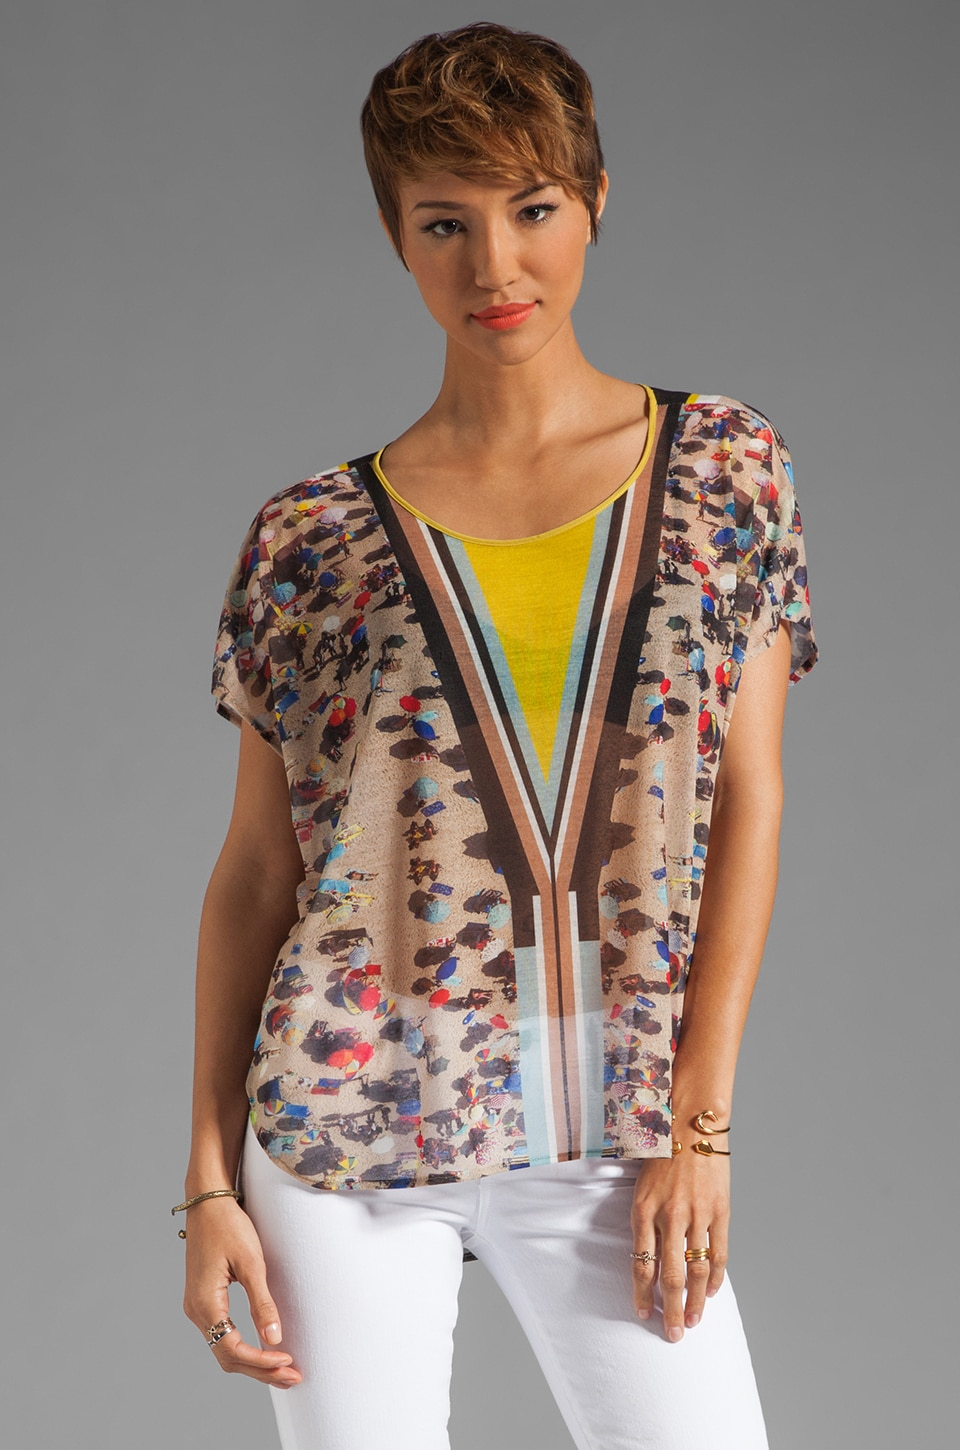 Clover Canyon Beach Short Sleeve Top in Multi